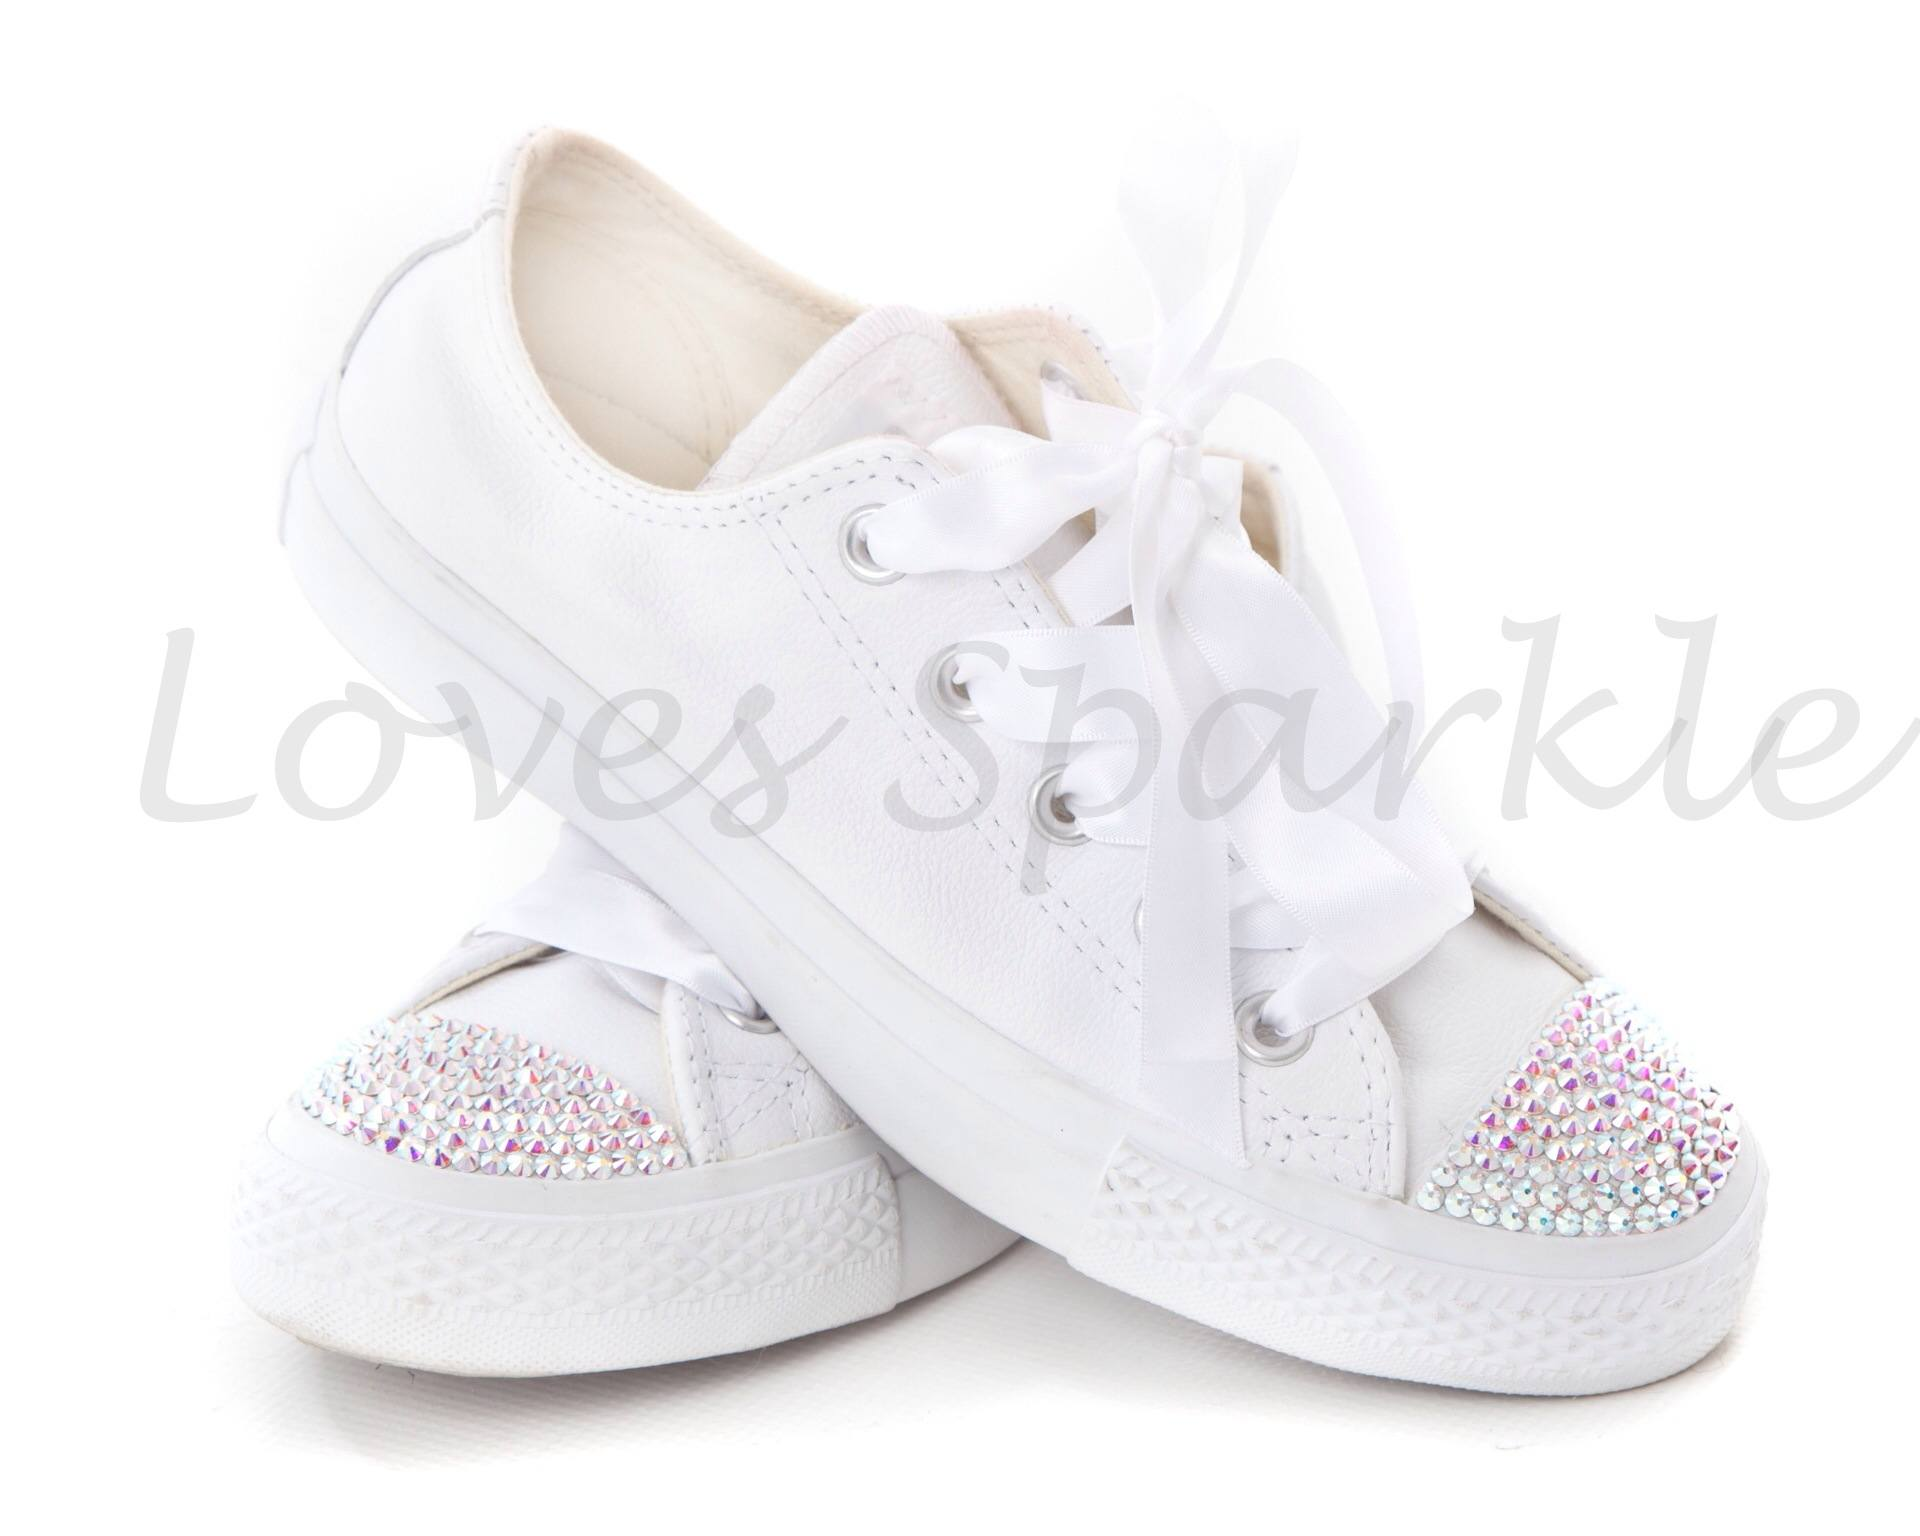 b8f26575e WHITE LEATHER SWAROVSKI CRYSTAL CONVERSE (LOW OR HIGHTOP) | Loves ...